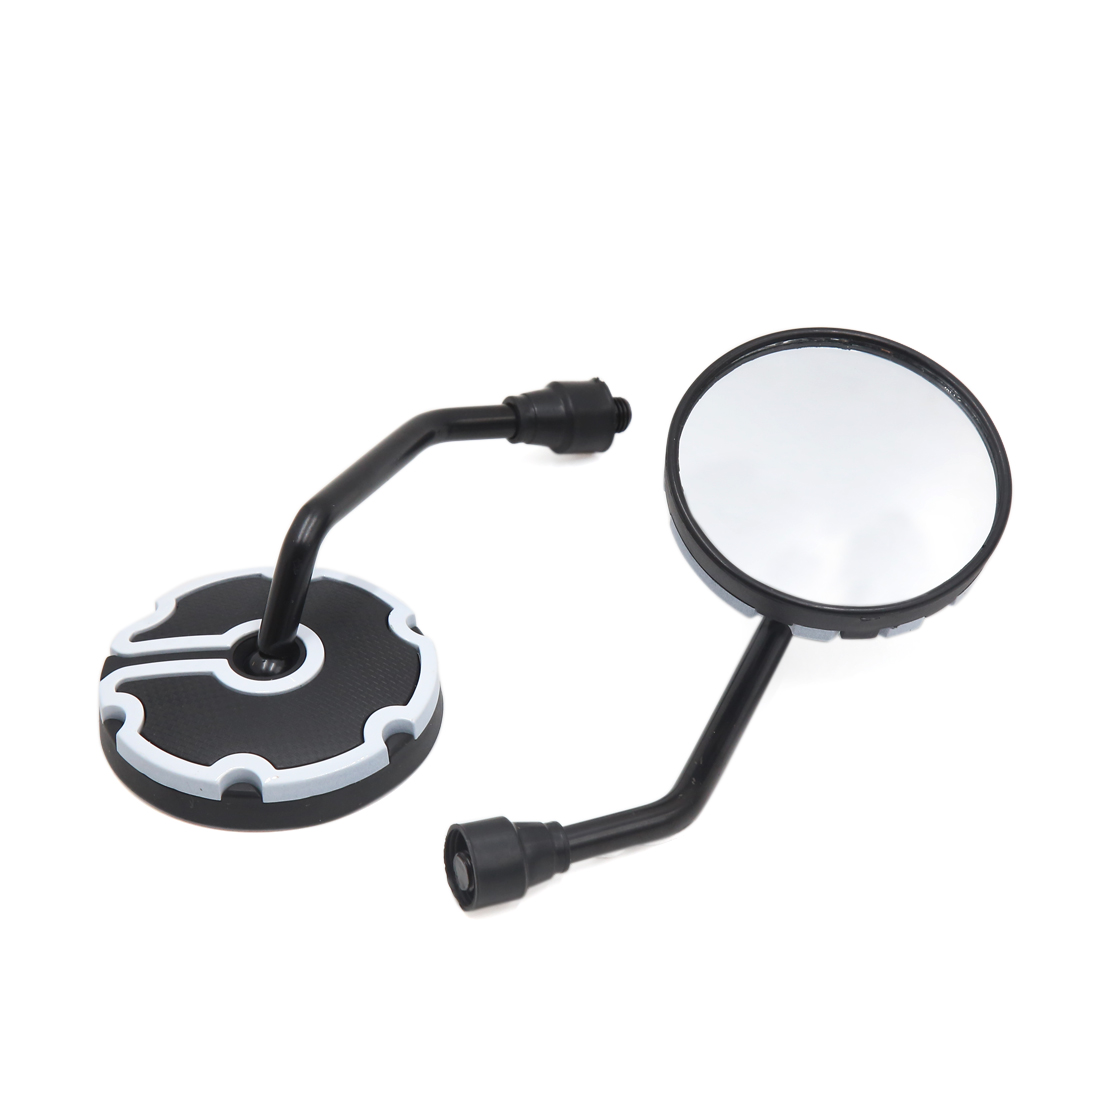 2 Pcs 10mm Thread Dia Round Shaped Adjustable Motorcycle Rearview Side Mirrors White Black